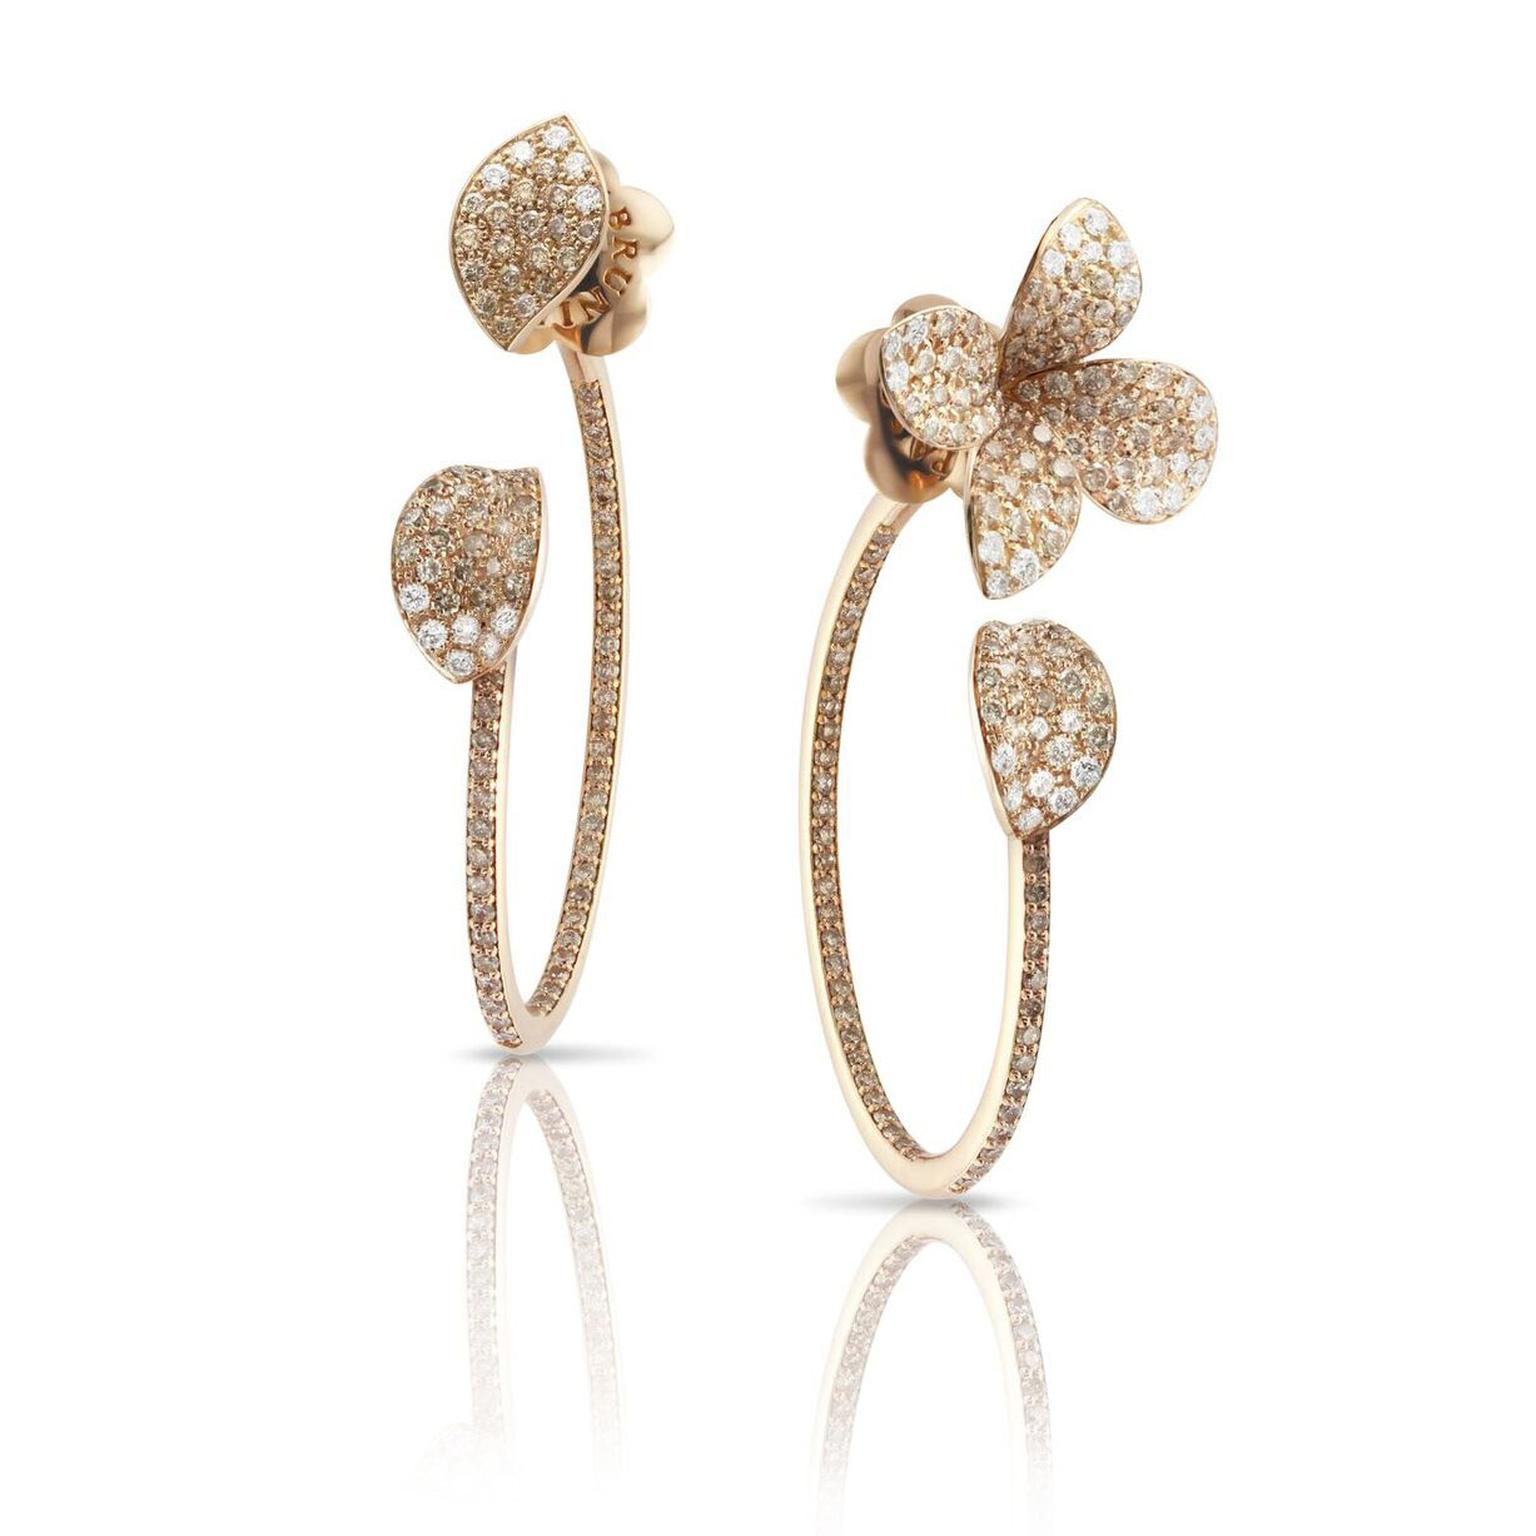 Pasquale Bruni rose gold and diamond earrings